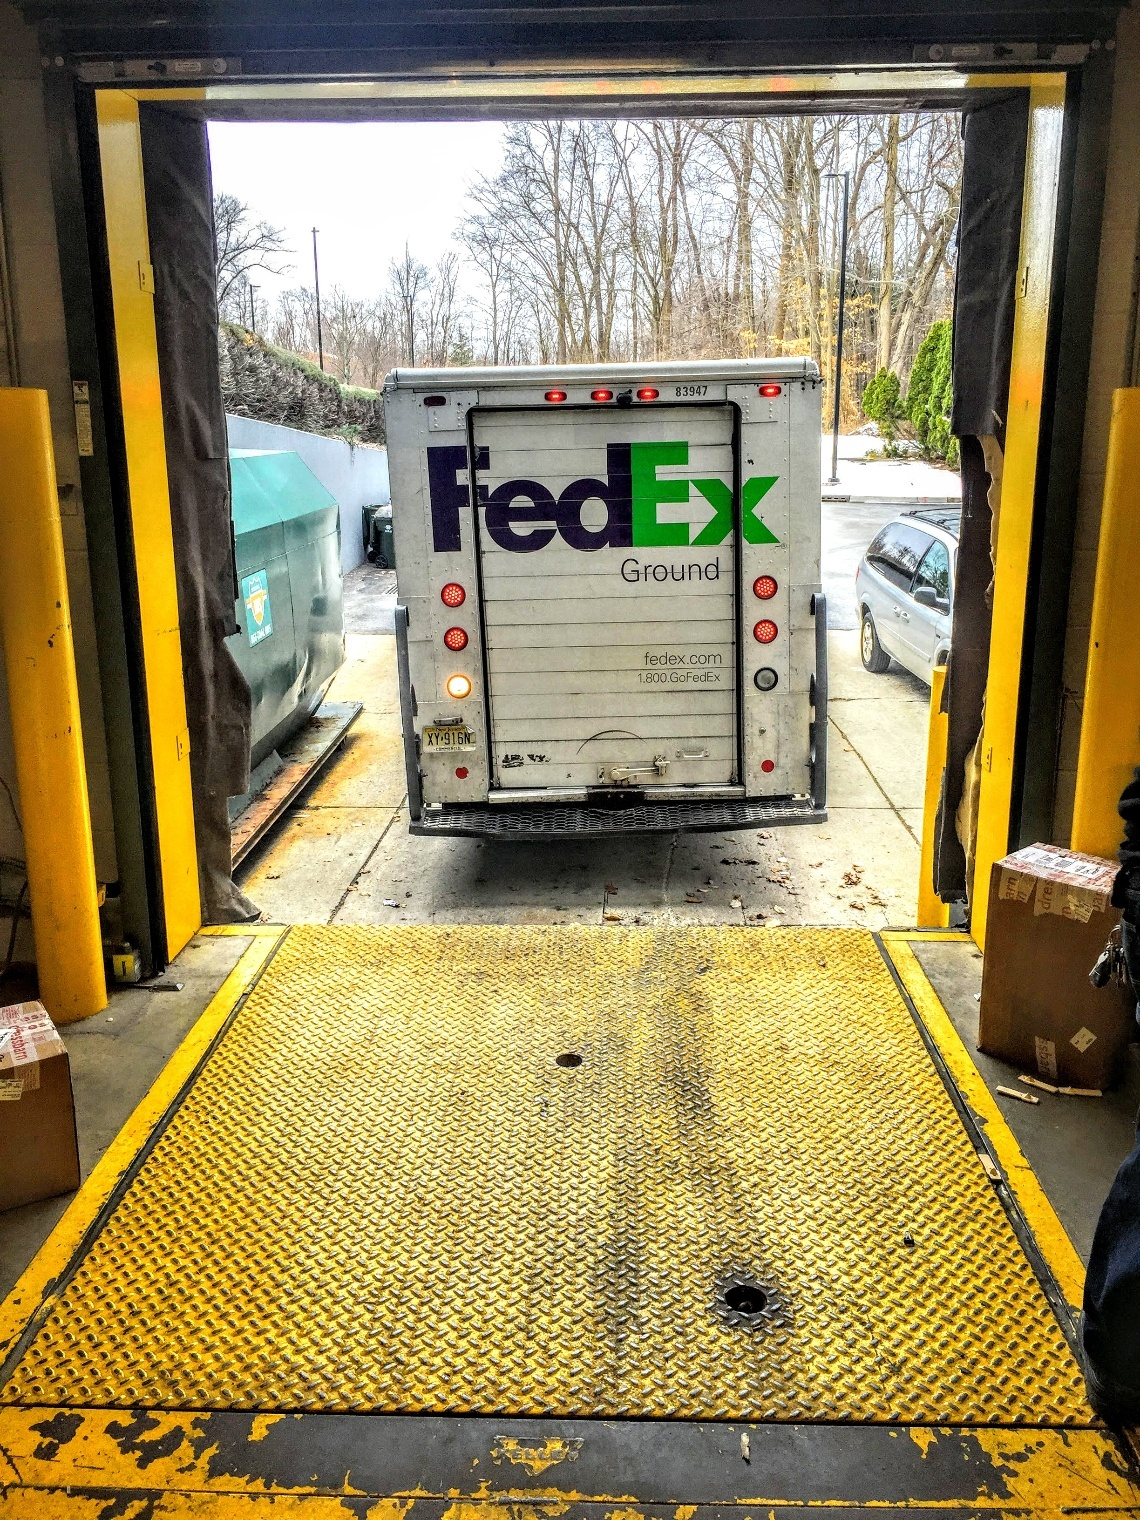 Our team at Loading Dock, Inc. is ready to repair, service, maintain and replace  your loading dock plates, dock doors, door pads, loading dock foam cushions, dock leveler lifts, truck restraints and dock rubber bumper pads in Middlesex County, NJ.  We are fully stocked with loading dock parts for hydraulic and mechanical dock leveler repairs.